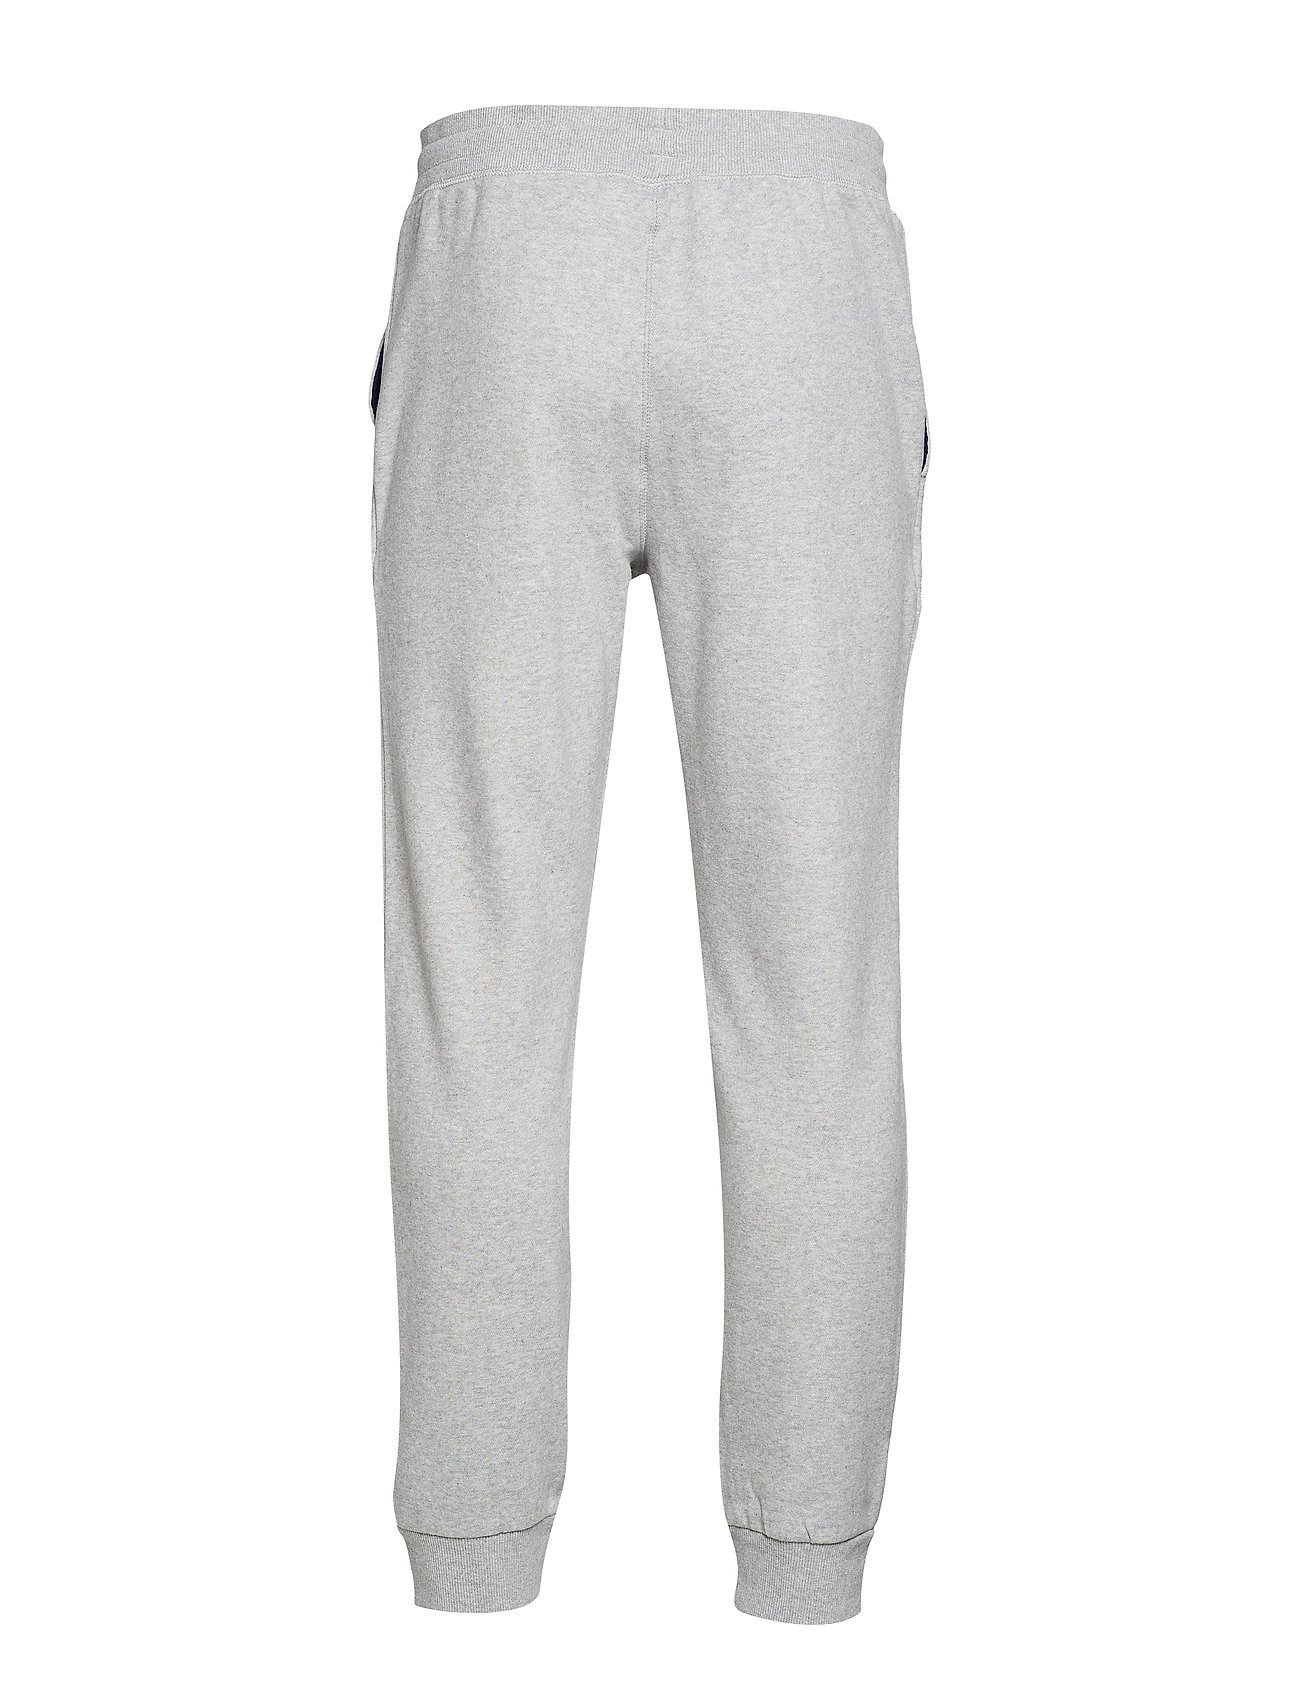 Varisty Pantlt Fleece HtrIzod Grey Track dexBoC